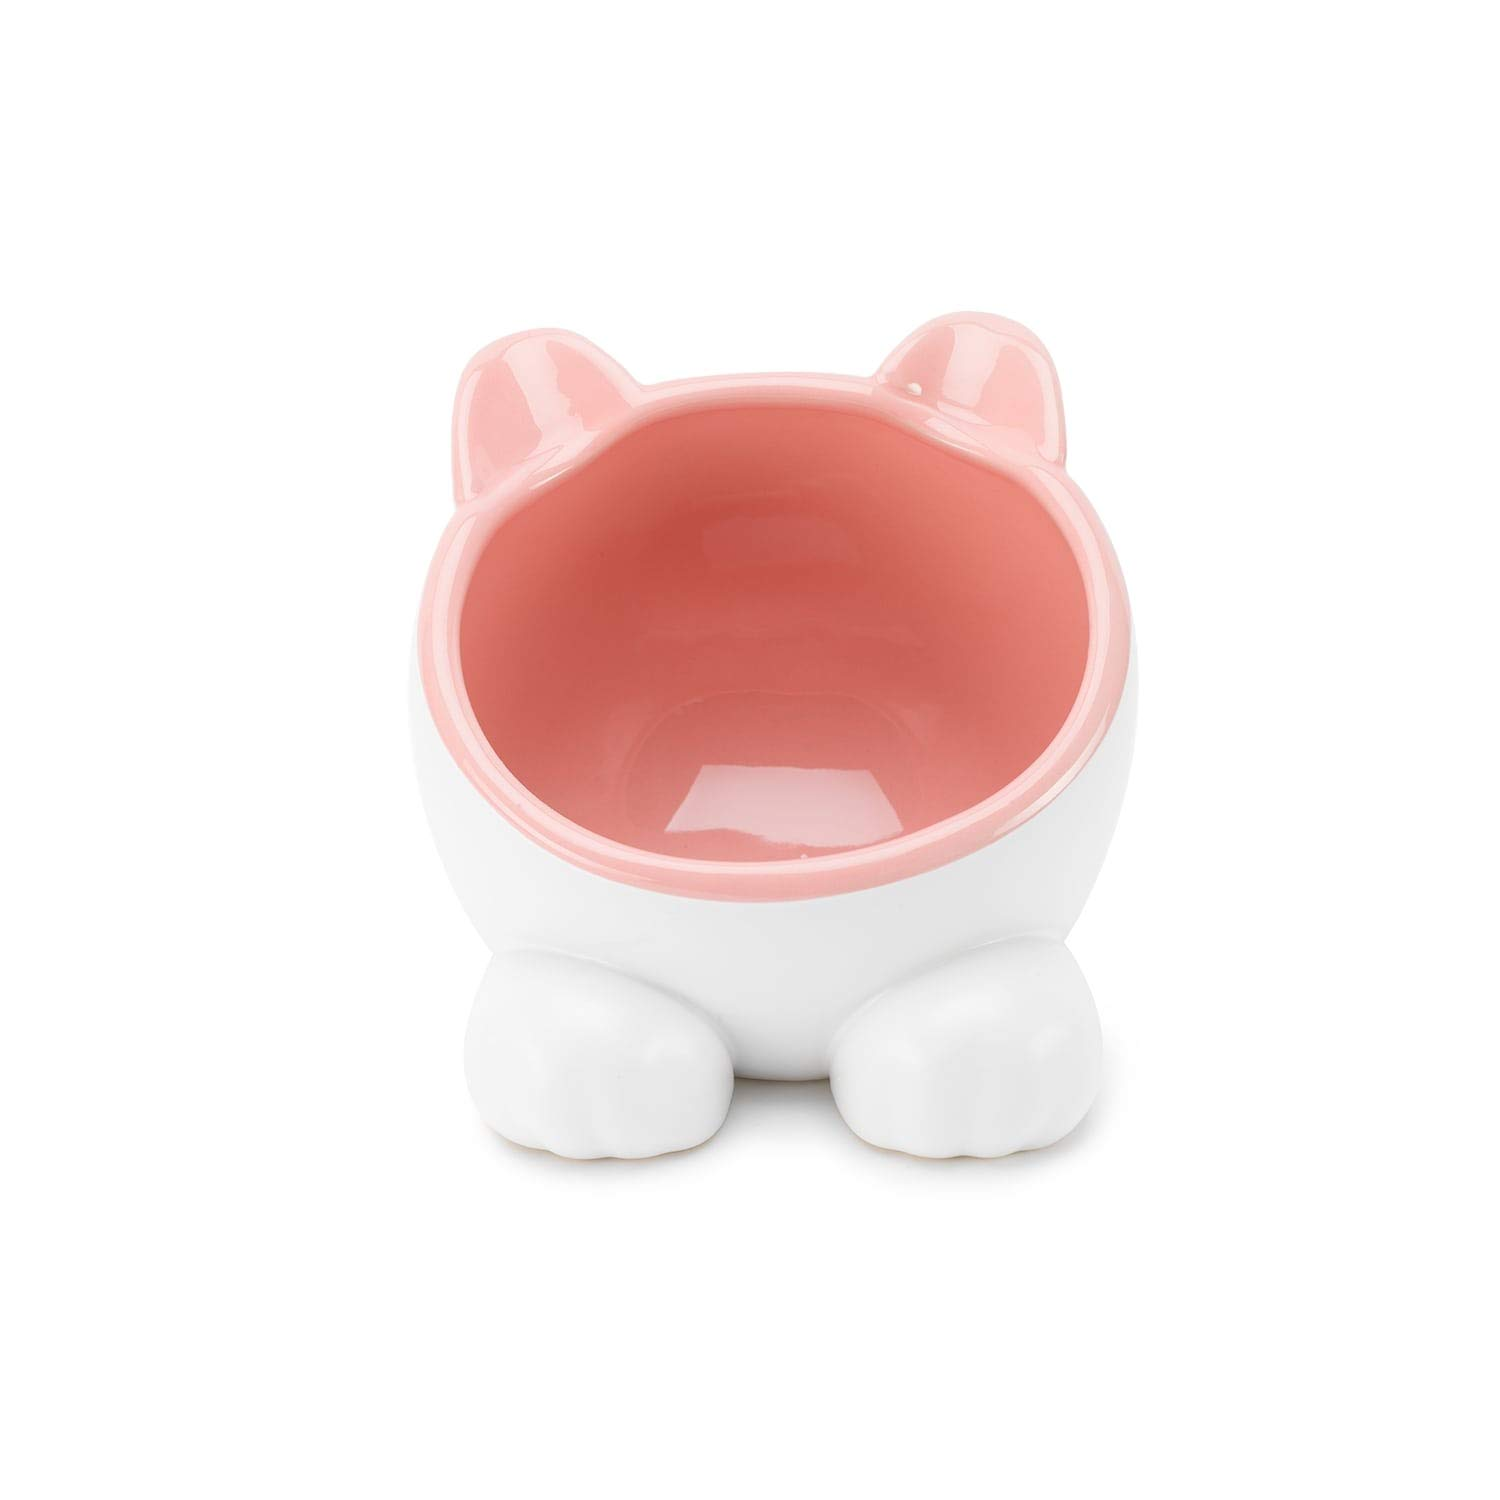 ViviPet Q Bowls and Big Head Water Bowl for Cat and Dog Under 20 Pound (Pink, Big Head Water Bowl) by ViviPet